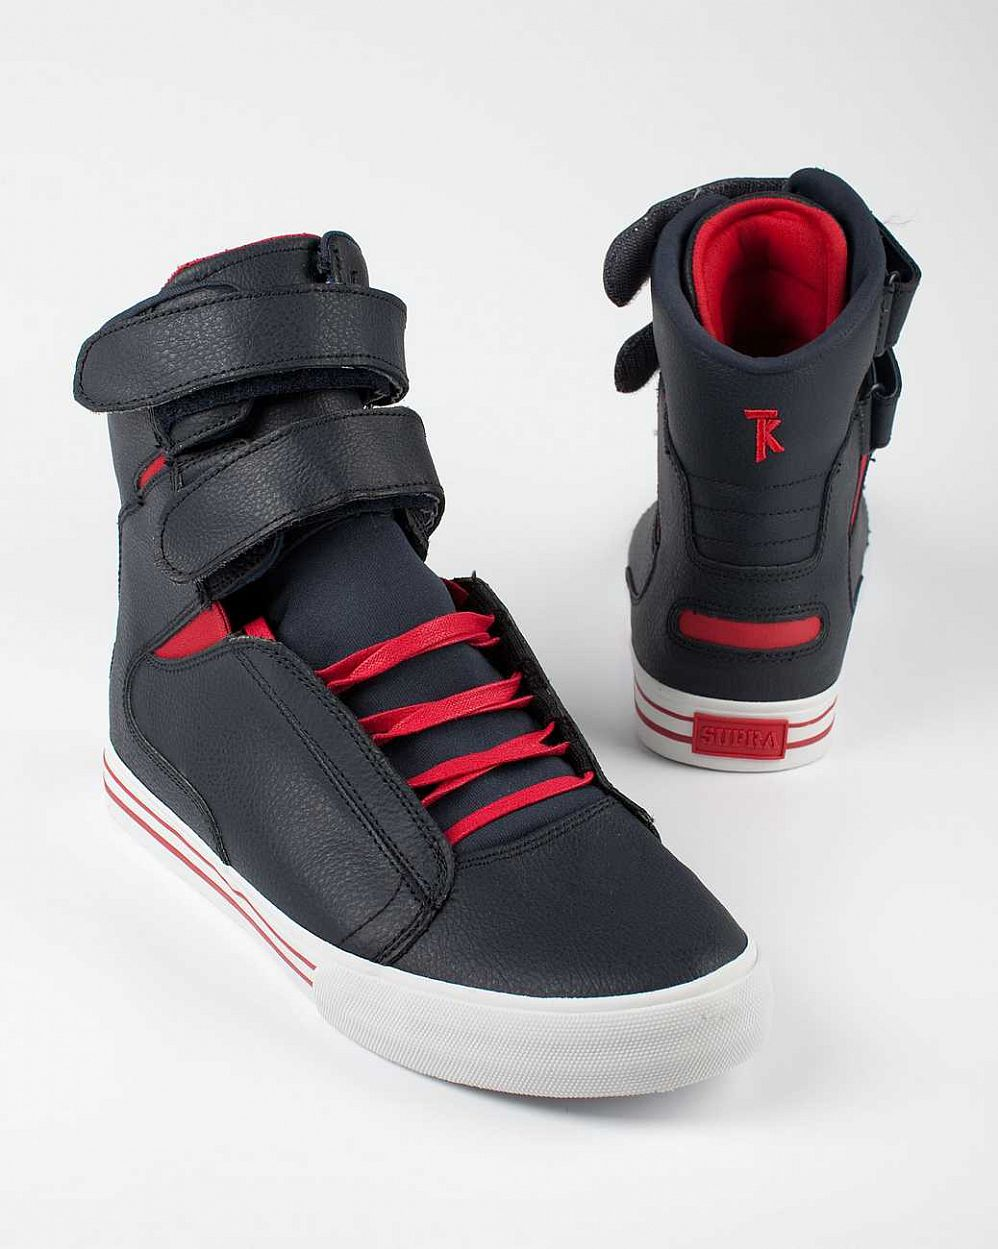 купить Кеды Supra Society Terry Kennedy red white red в Москве